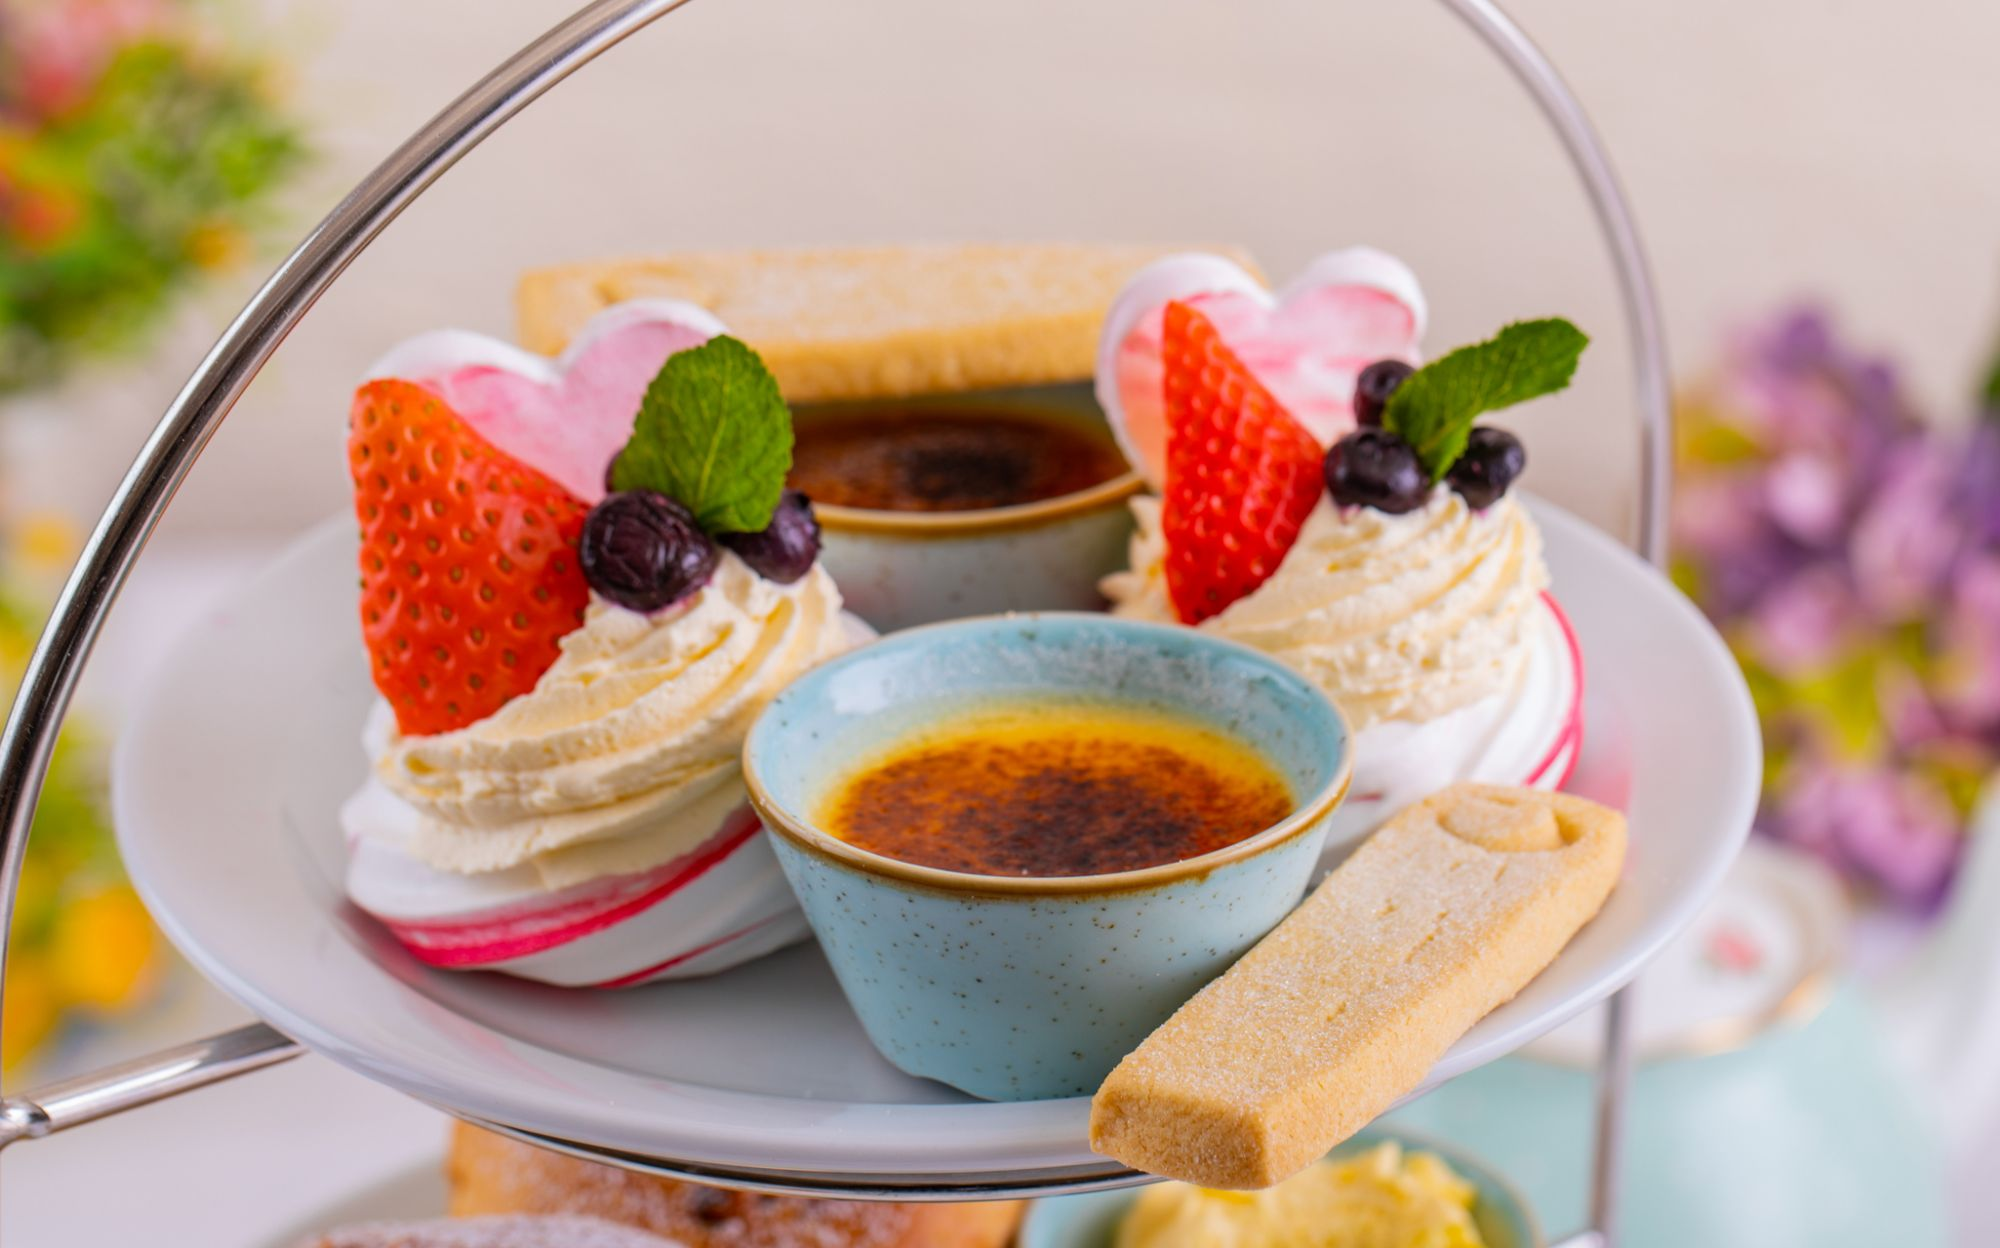 Indulgent Afternoon Tea from Food at Webbs